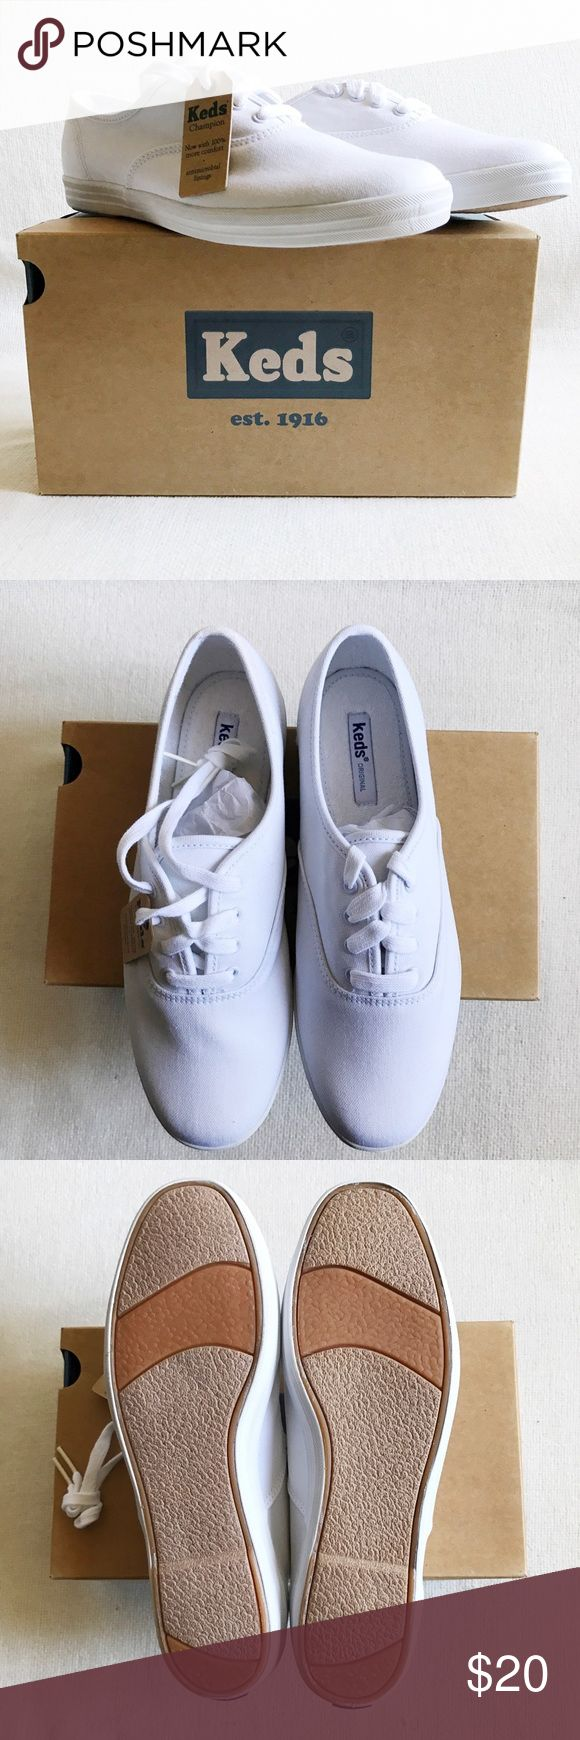 👟 Keds Champion Original Canvas Sneakers New with tags but has markings inside the shoes (see photo) and some wear on the inside of the shoe from people trying on the shoes in-store. Outer area of the shoe is clean and has no markings/holes/tears. Keds Shoes Sneakers